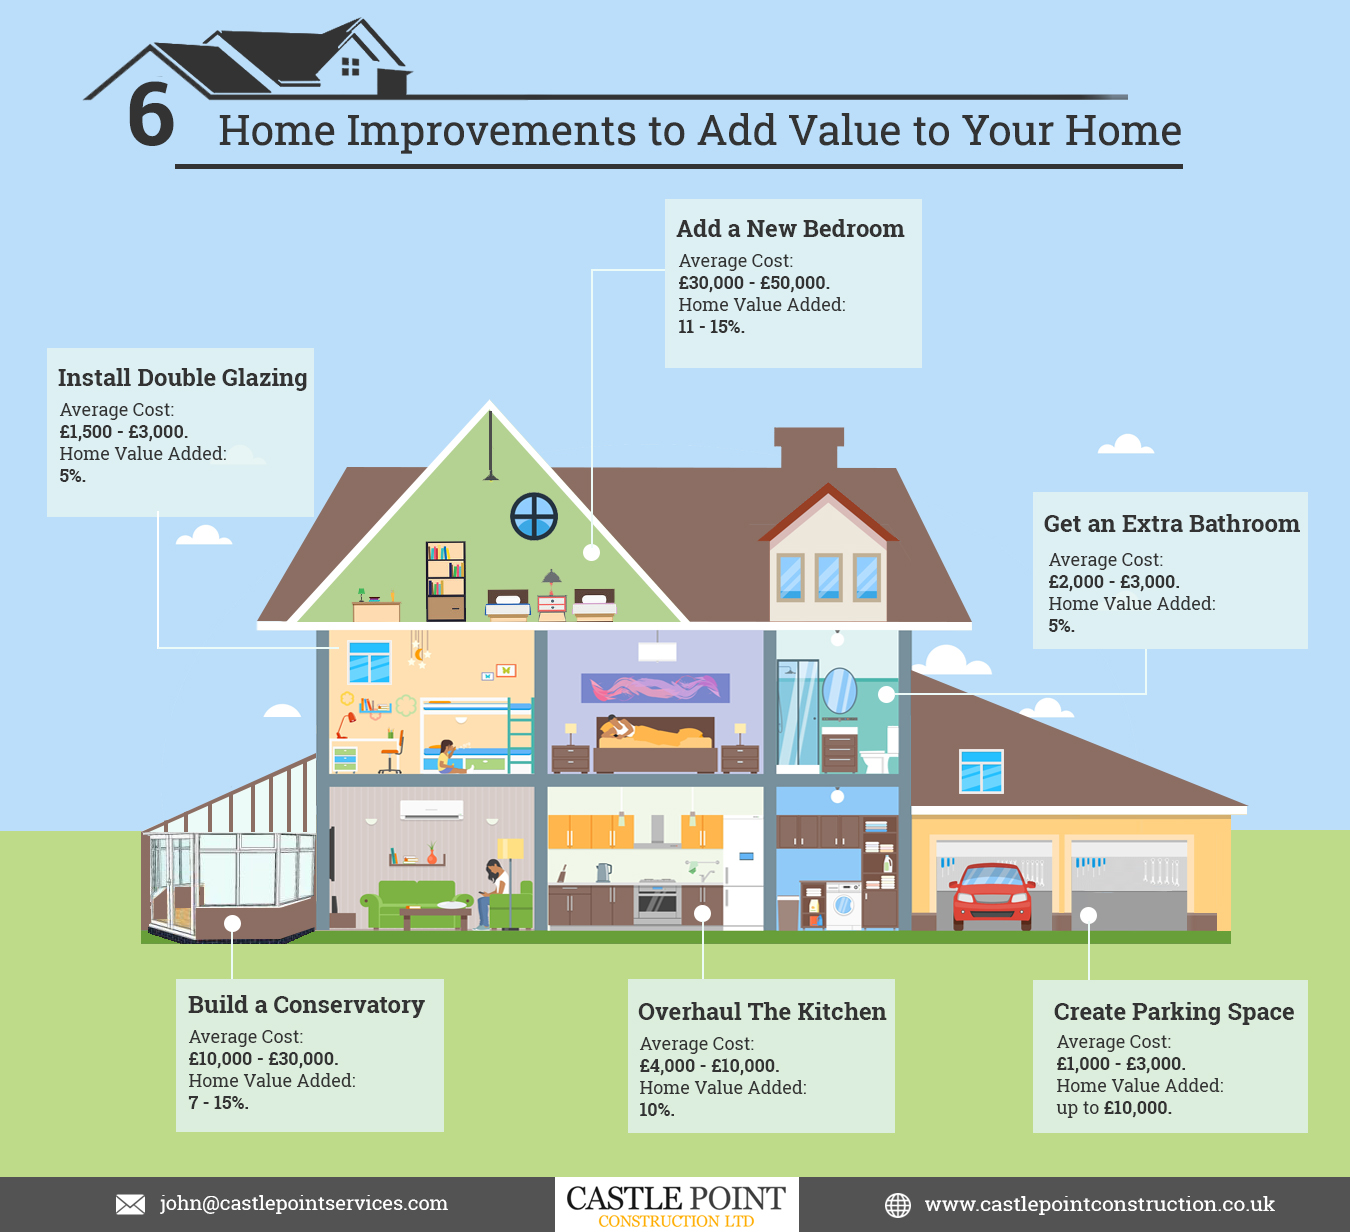 6 Home Improvements To Increase Your Home's Value